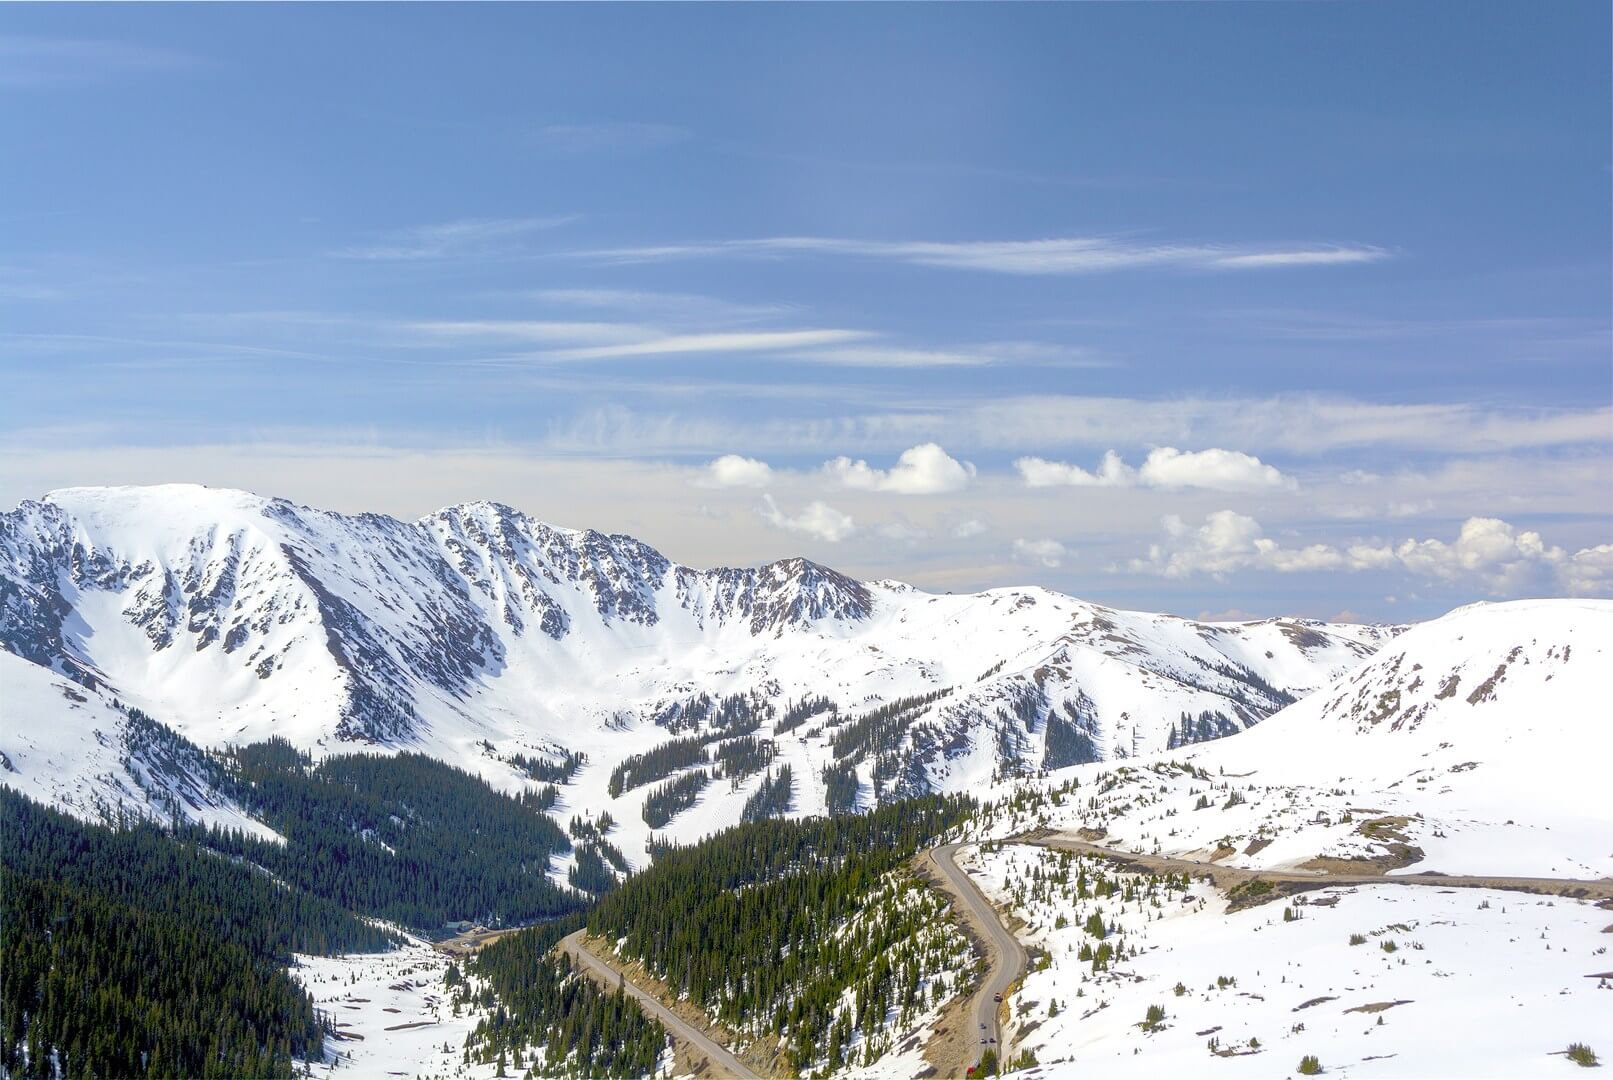 Looking at Arapahoe Basin from a distance on a sunny day